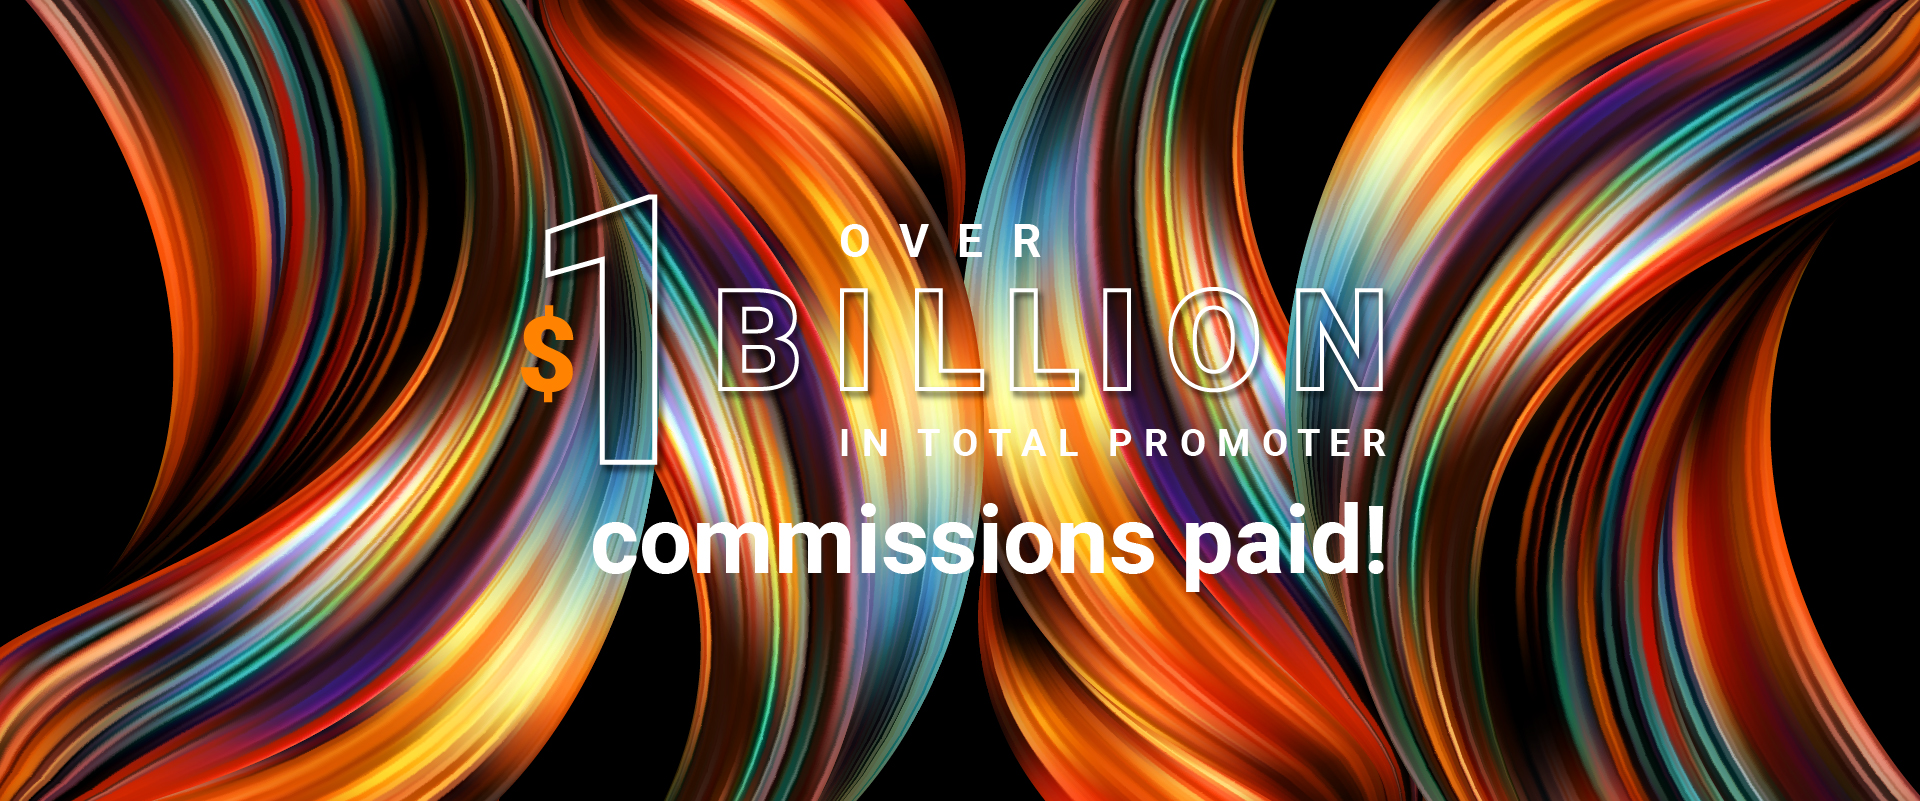 Approaching $1 Billion in Total Promoter Commissions Paid!